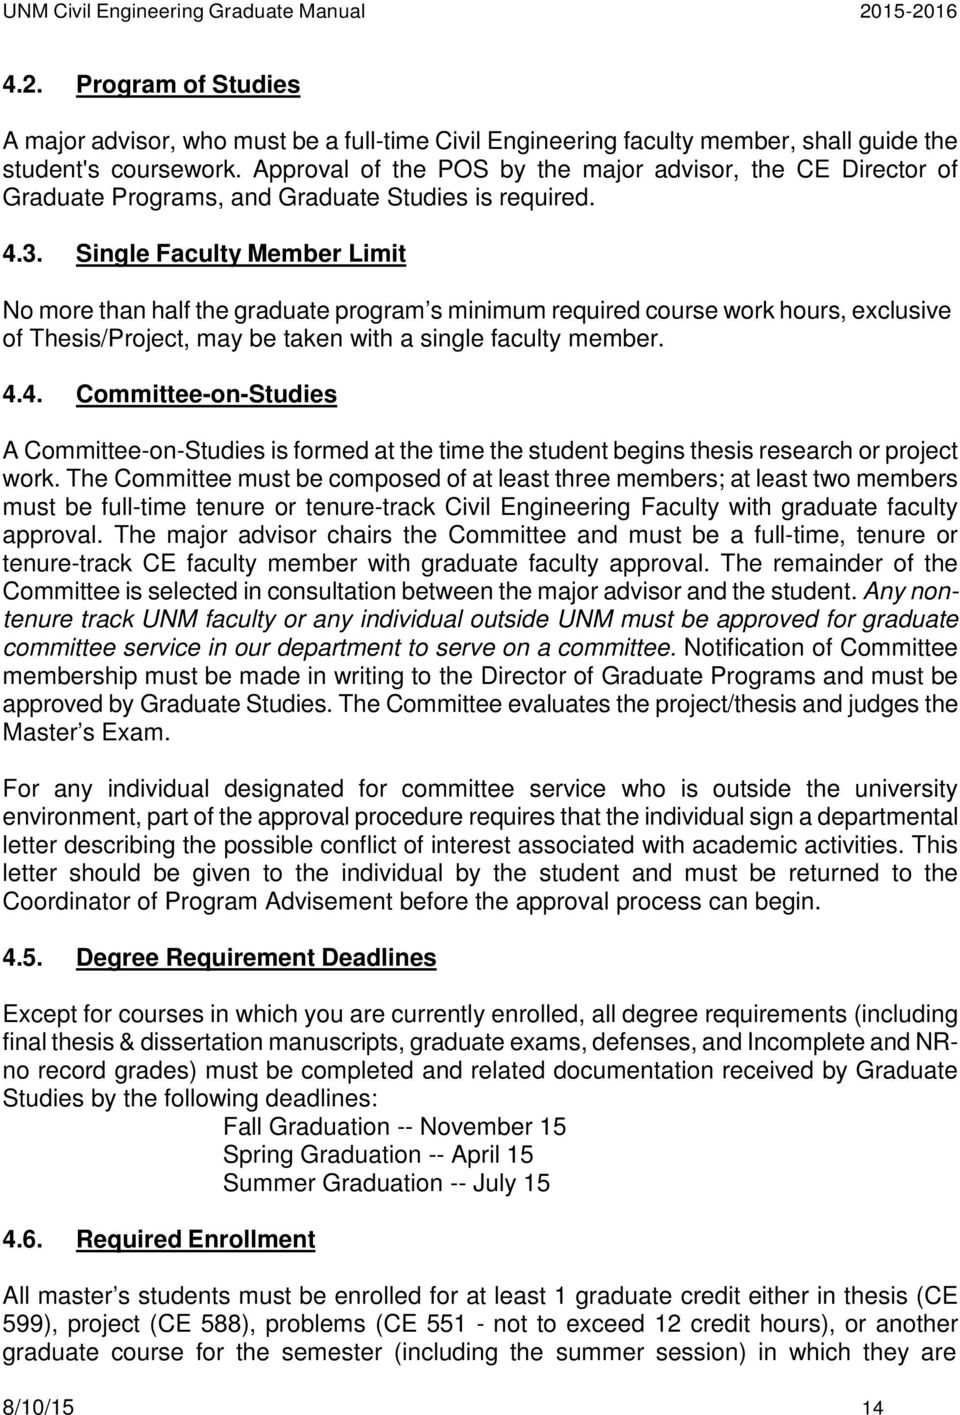 Single Faculty Member Limit No more than half the graduate program s minimum required course work hours, exclusive of Thesis/Project, may be taken with a single faculty member. 4.